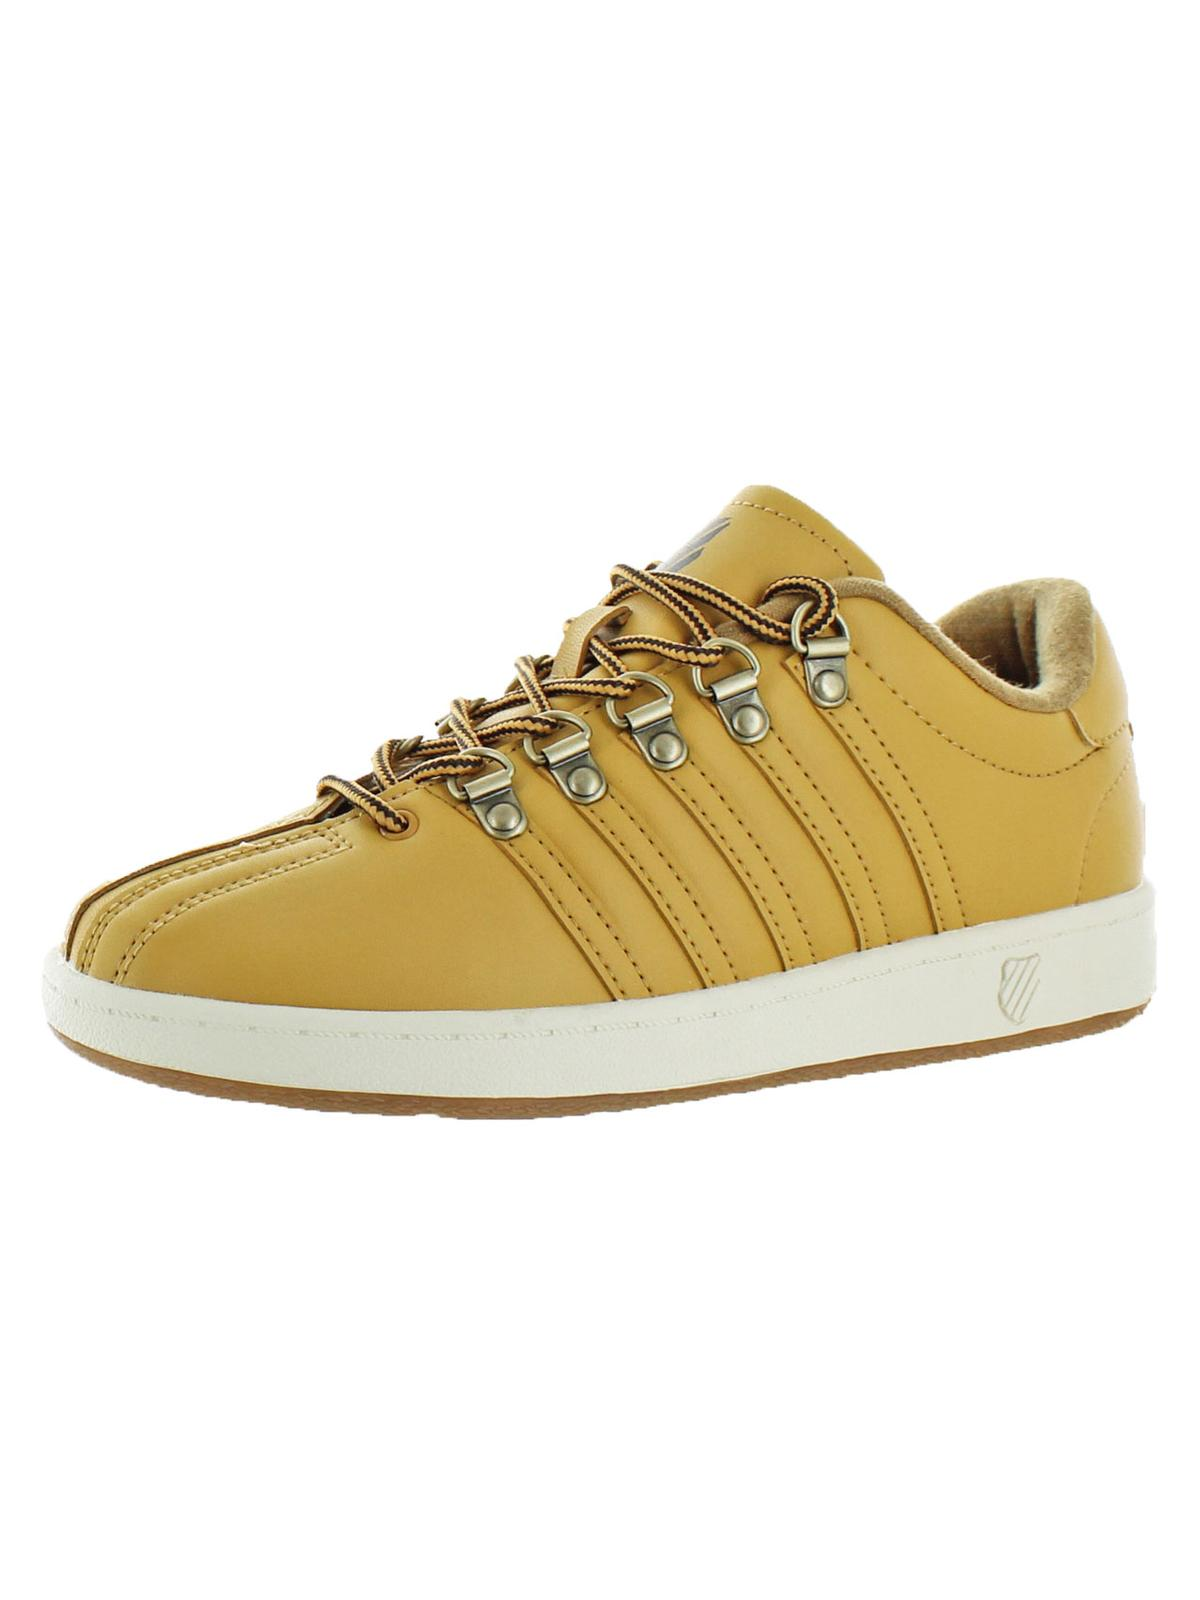 K-Swiss Boys Classic VN Big Kid Low Top Athletic Shoes by K-Swiss